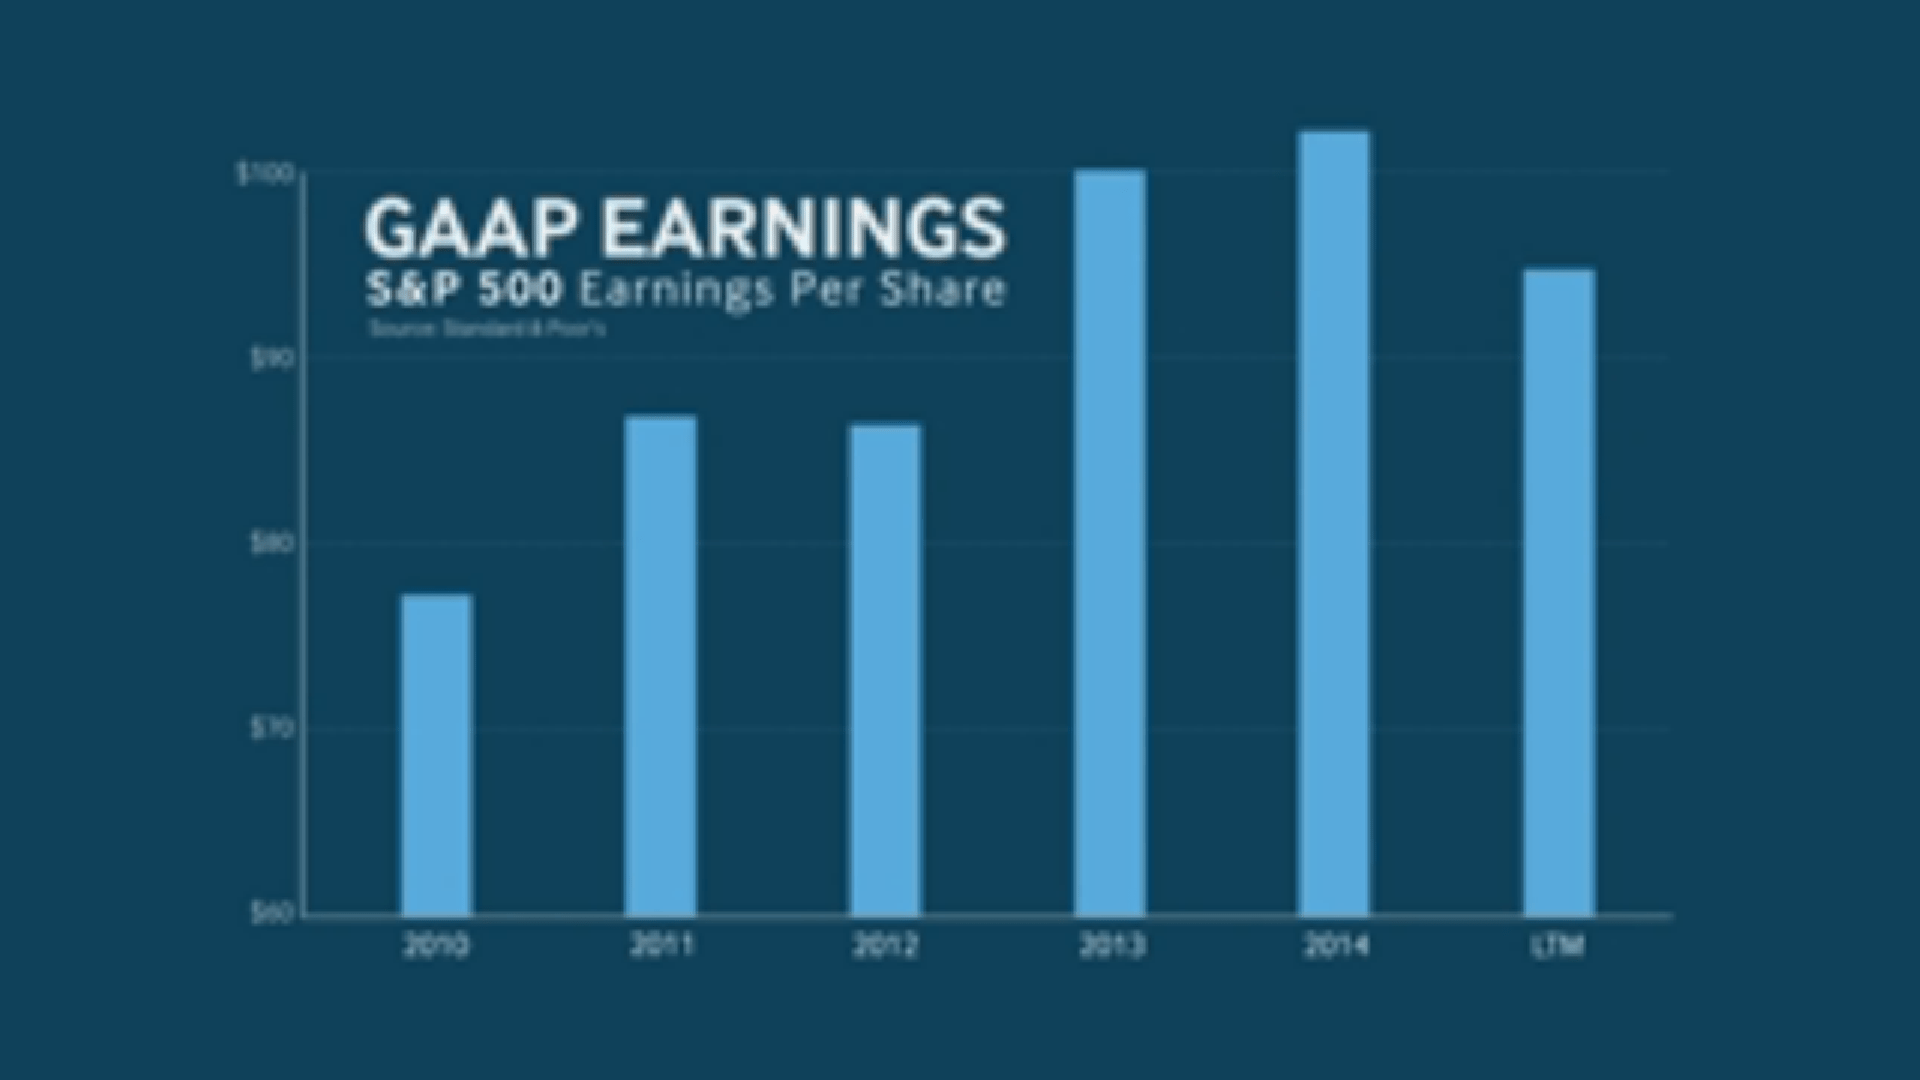 And yet, earnings aren't really growing.